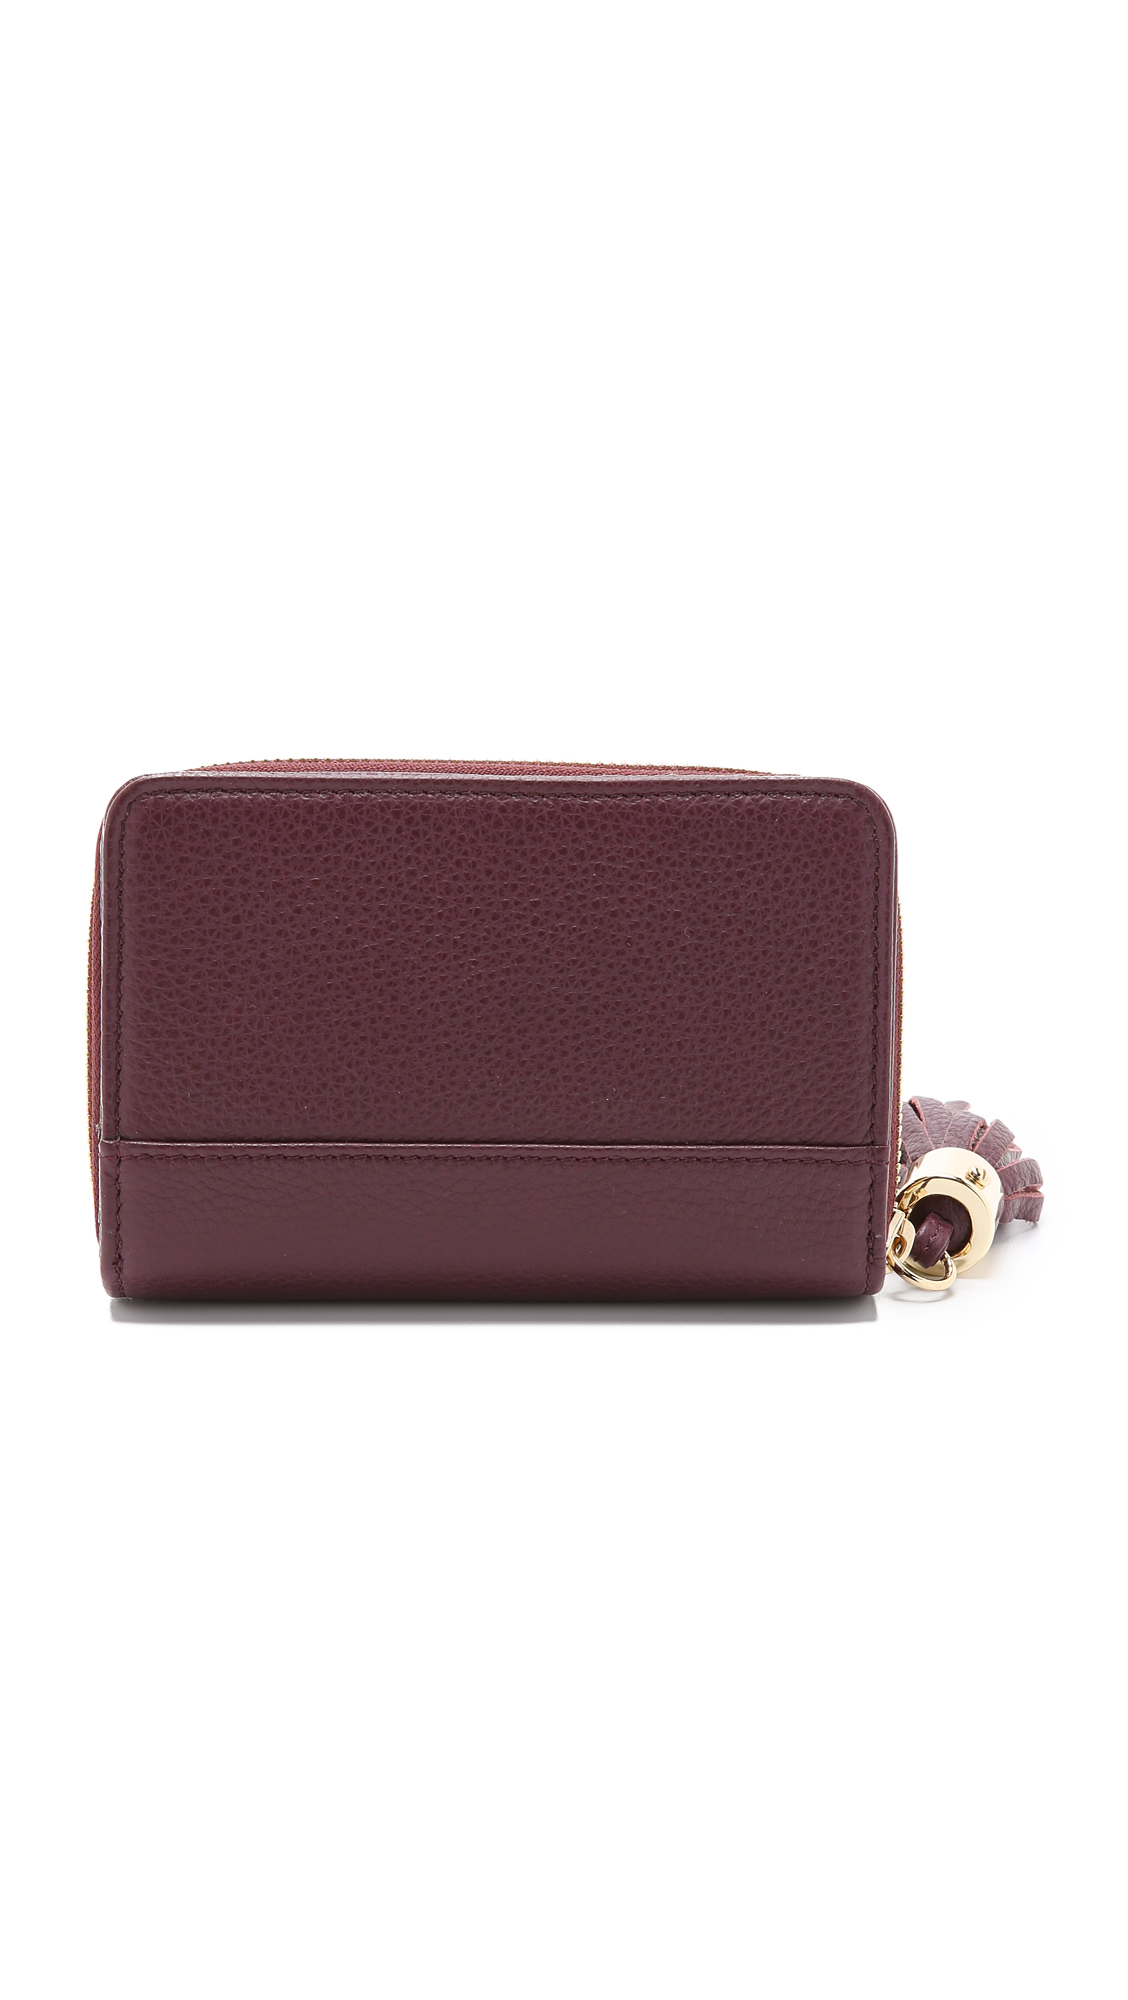 Lyst - See By Chlo Vicki Small Wallet - Plum In Purple-5951